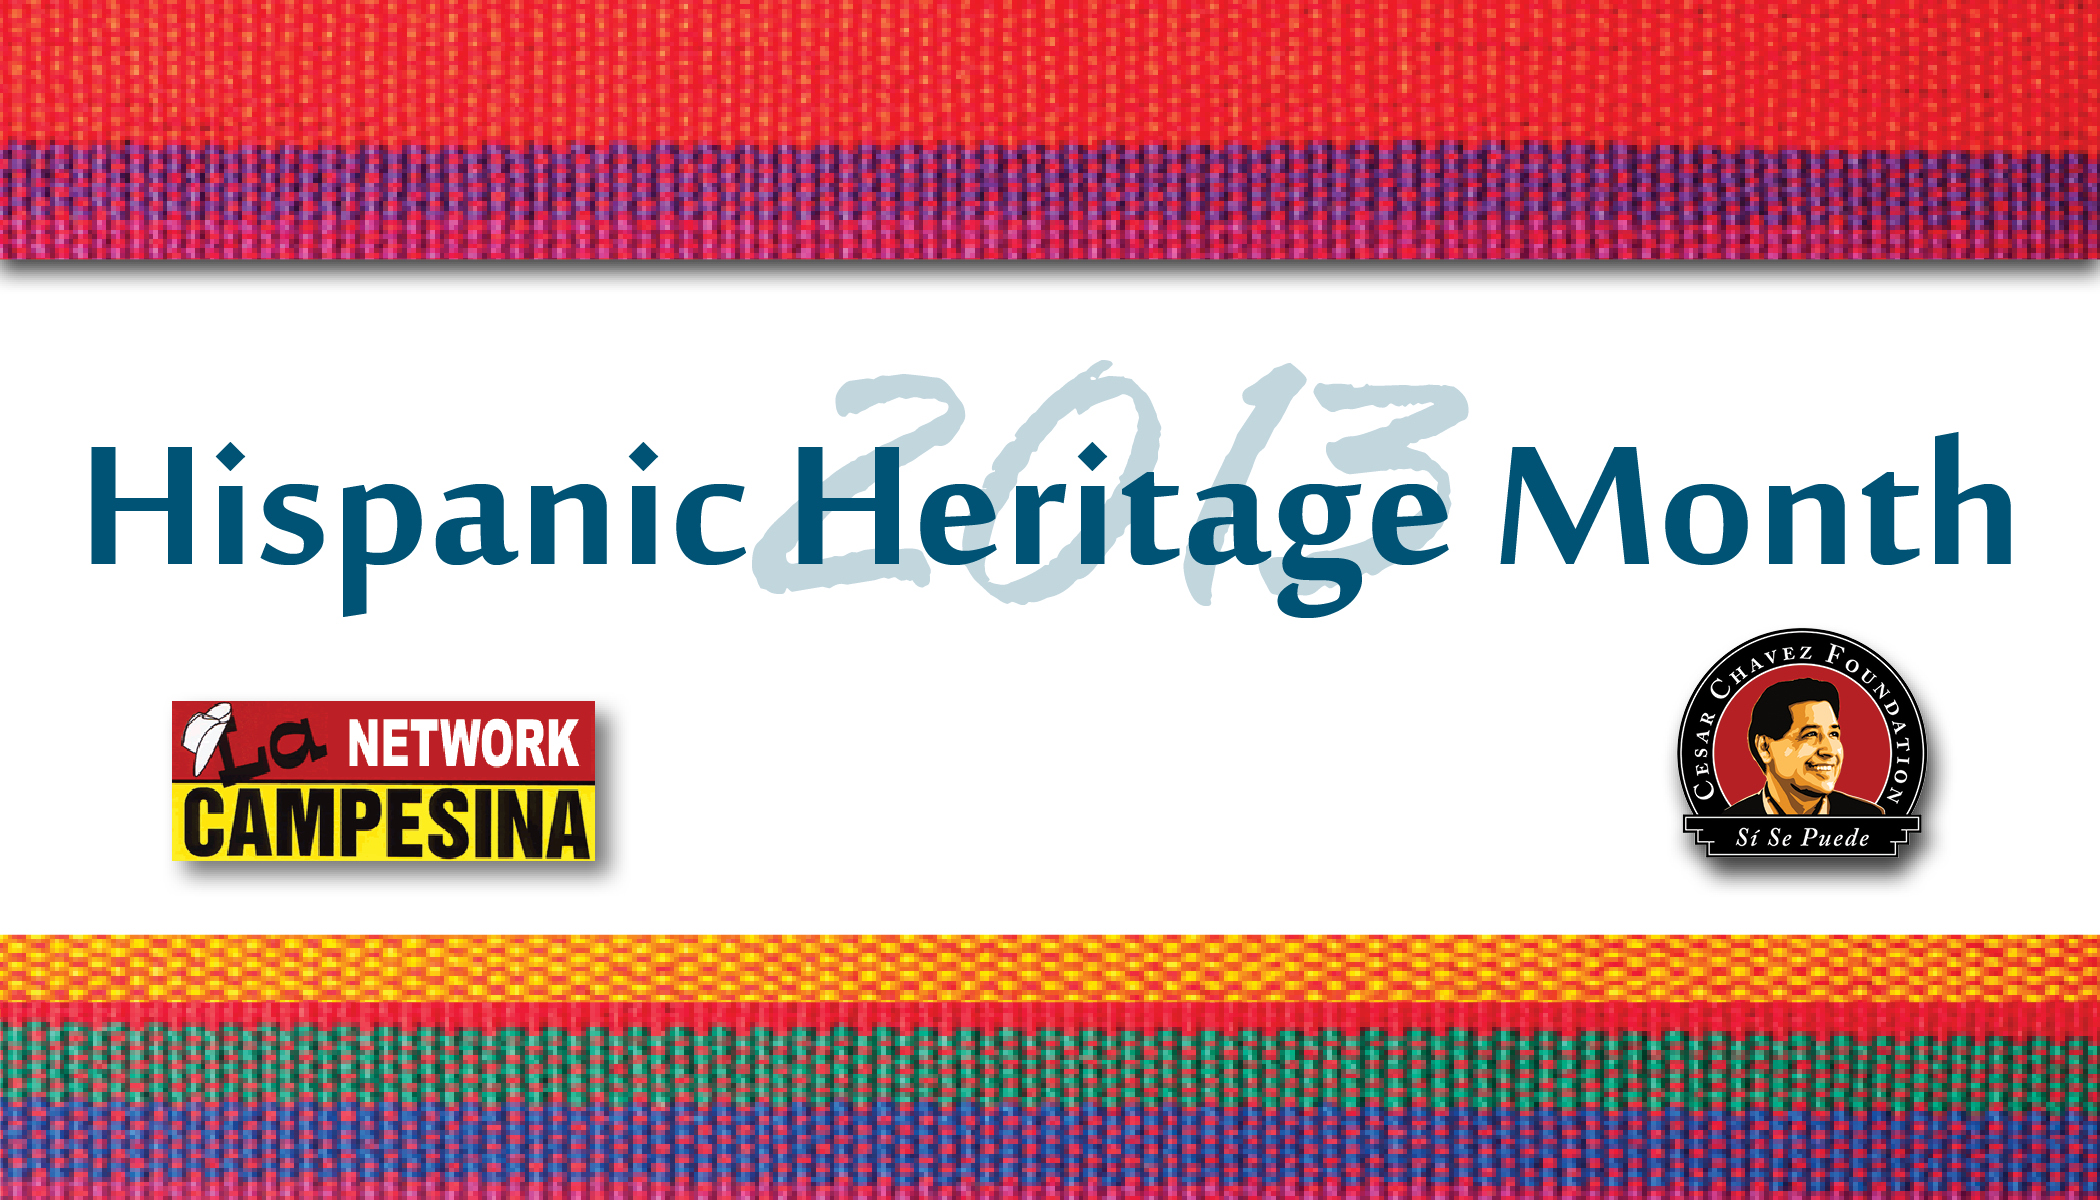 Hispanic_heritage_month_2013_prx_tilte_4_small